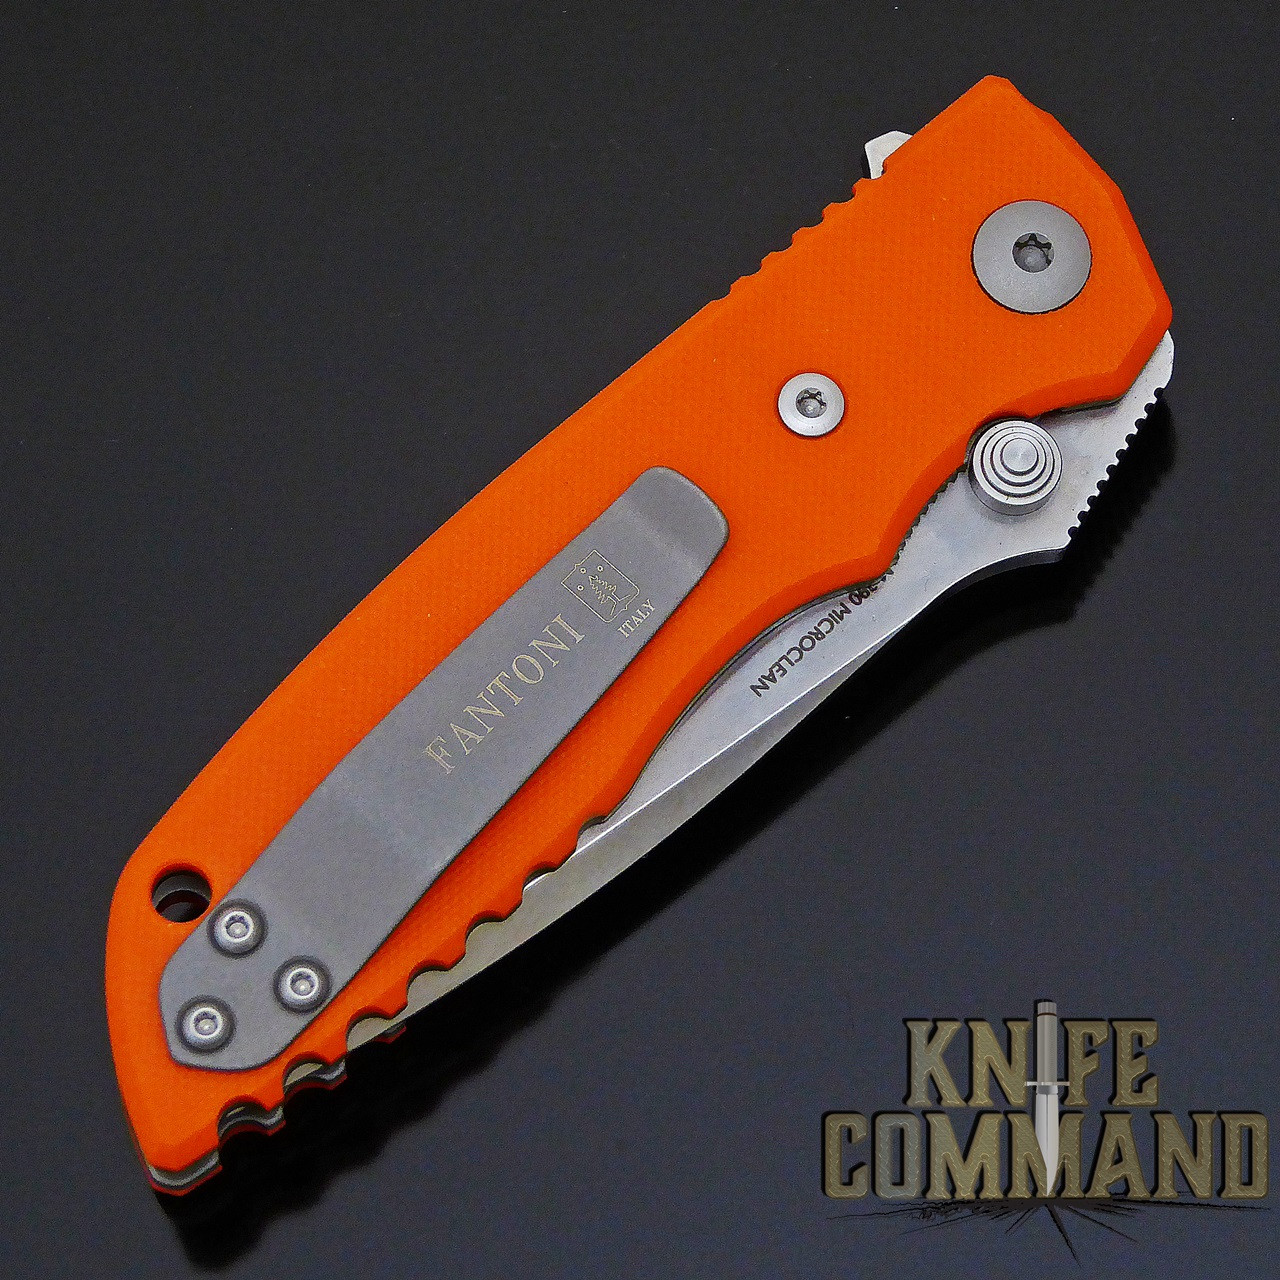 Fantoni HB 03 M390 William Harsey Combat Folder Tactical Knife Blaze Orange.  Reversible pocket clip.